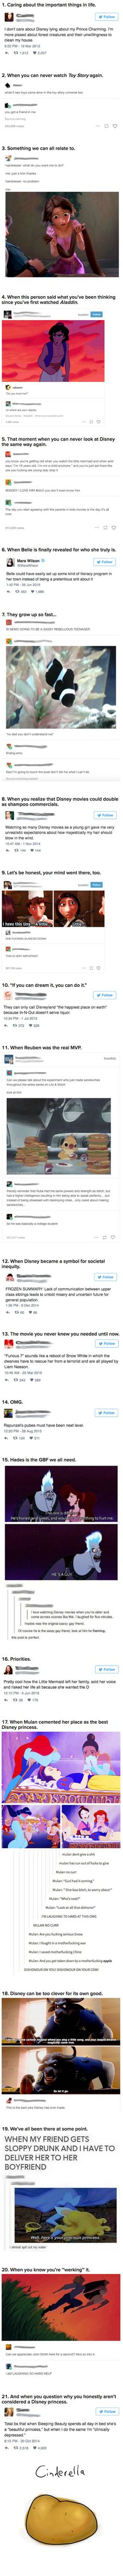 21 Funny Disney Posts That'll Make You Pee Your Pants - 9GAG